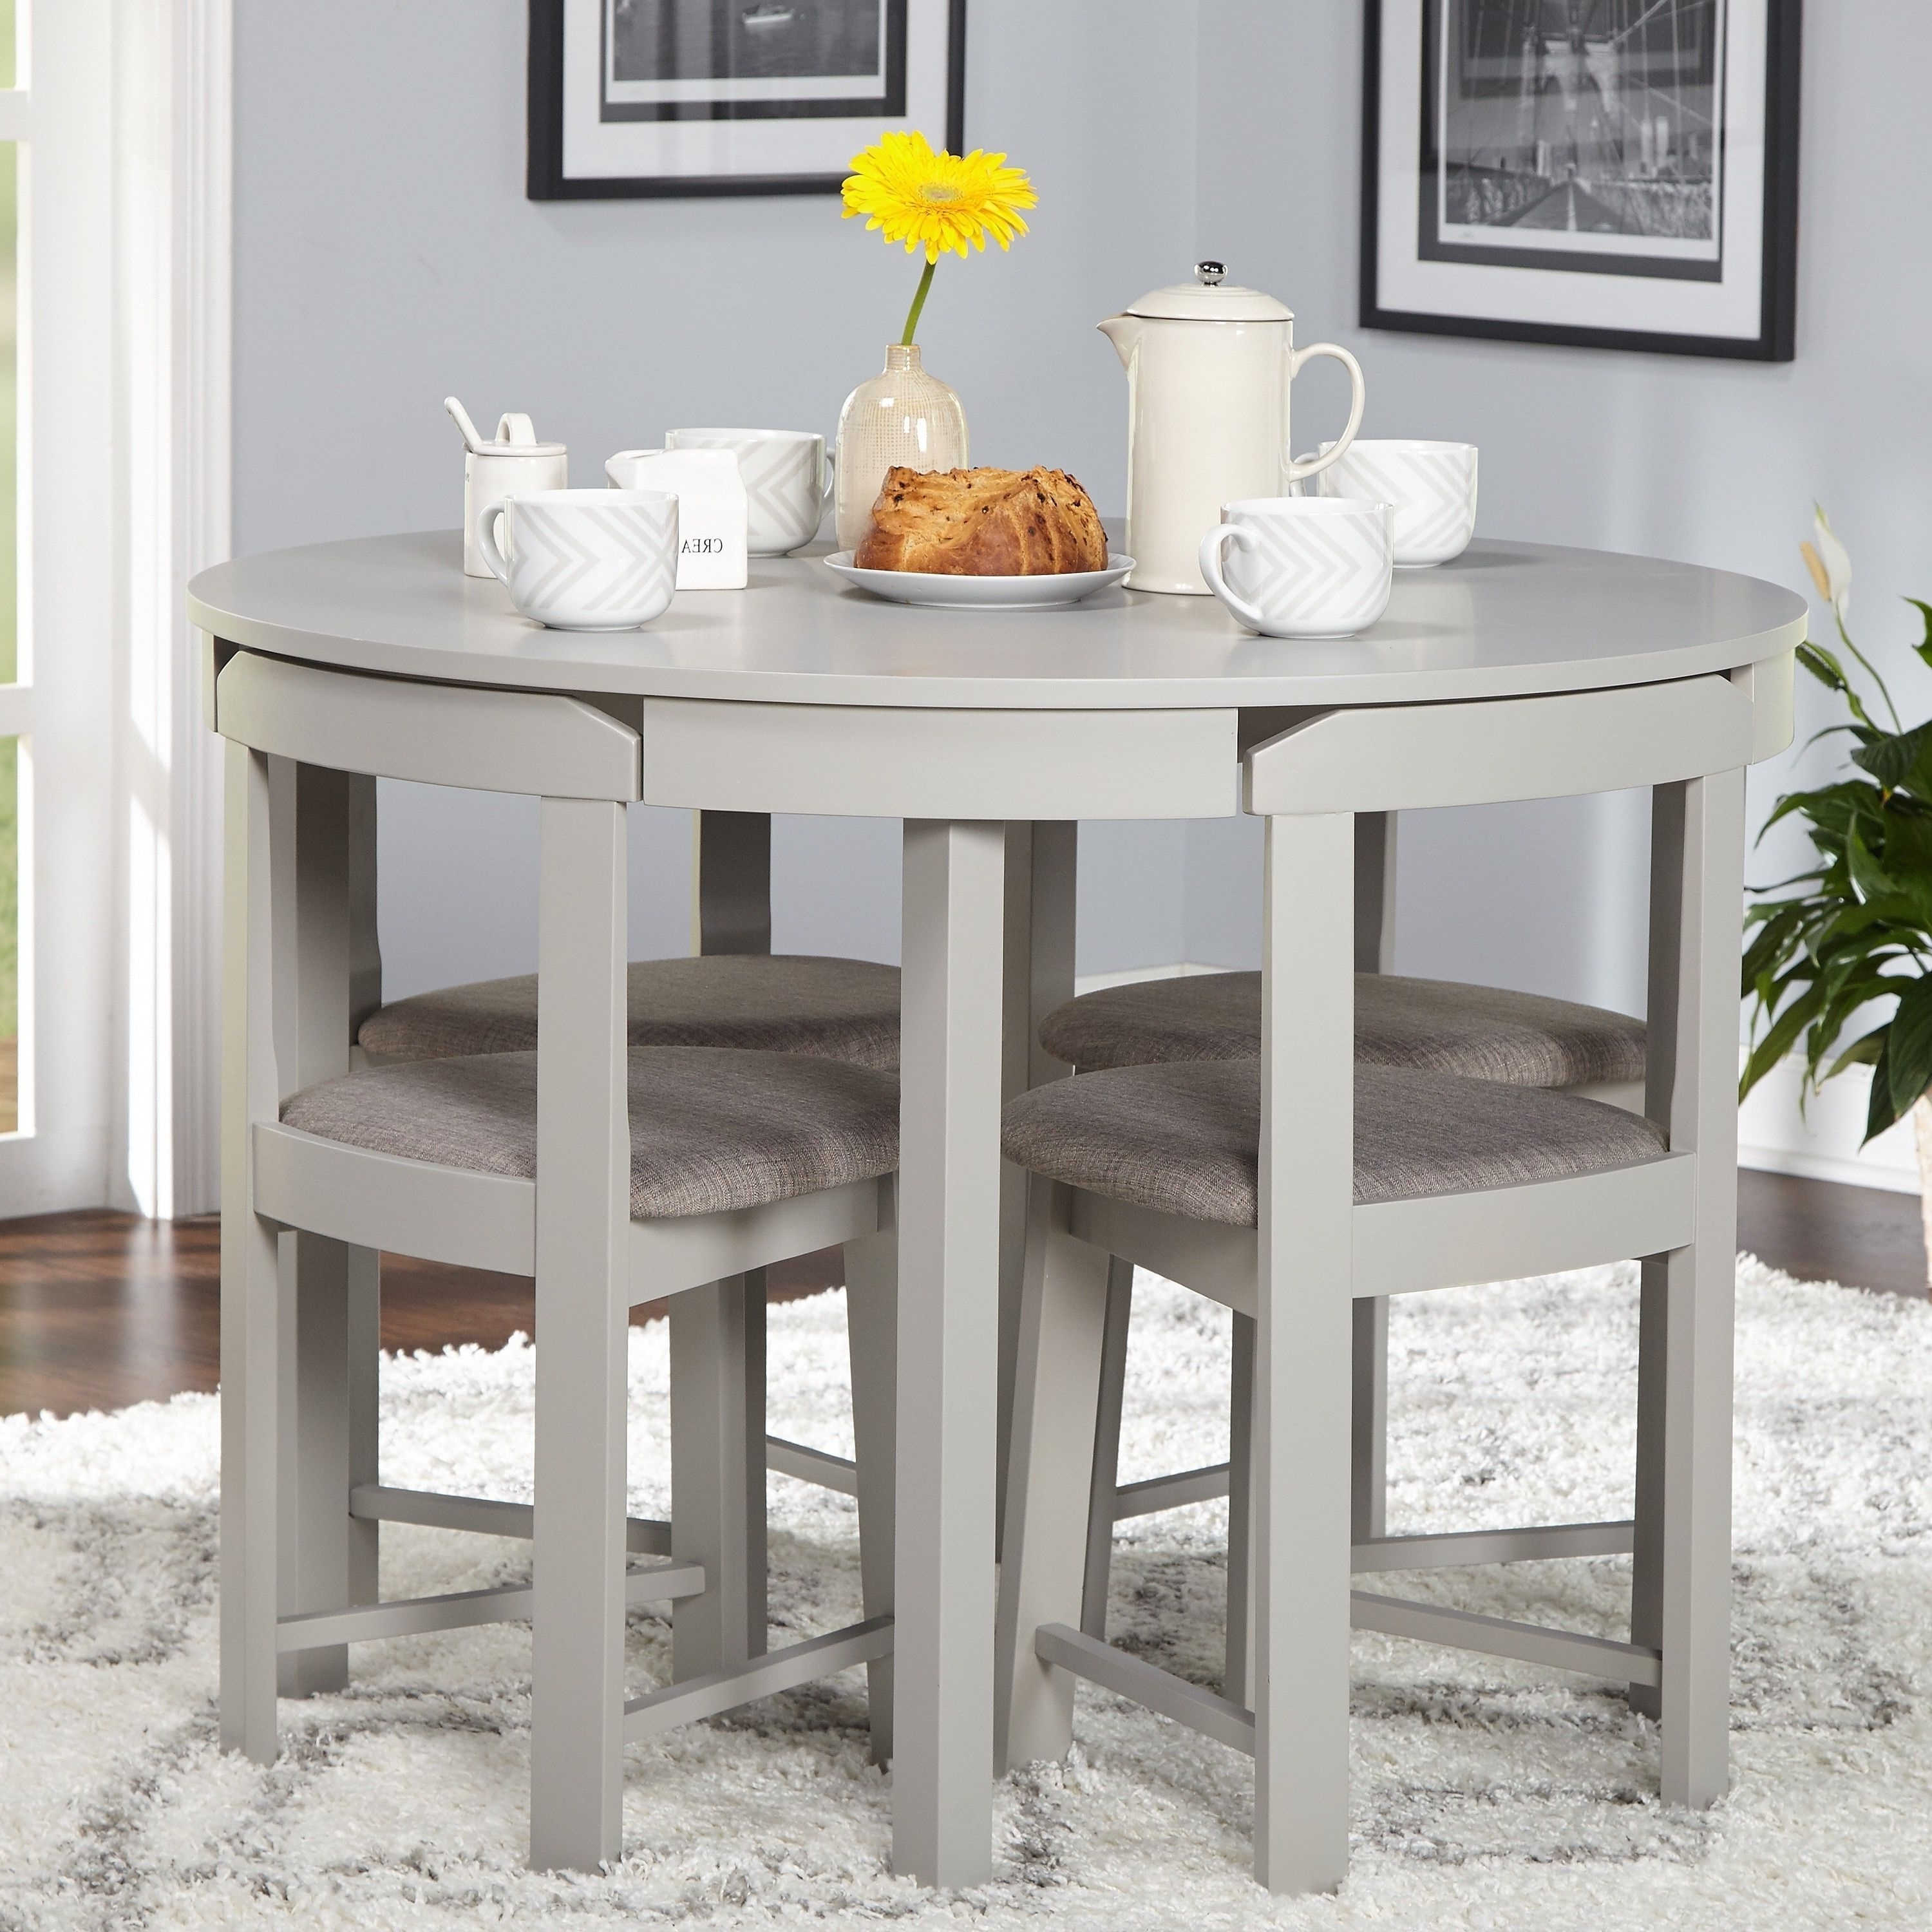 Compact Dining Tables With Well Liked Perfect For Smaller Spaces The 5 Piece Tobey Compact Dining Set (View 1 of 25)